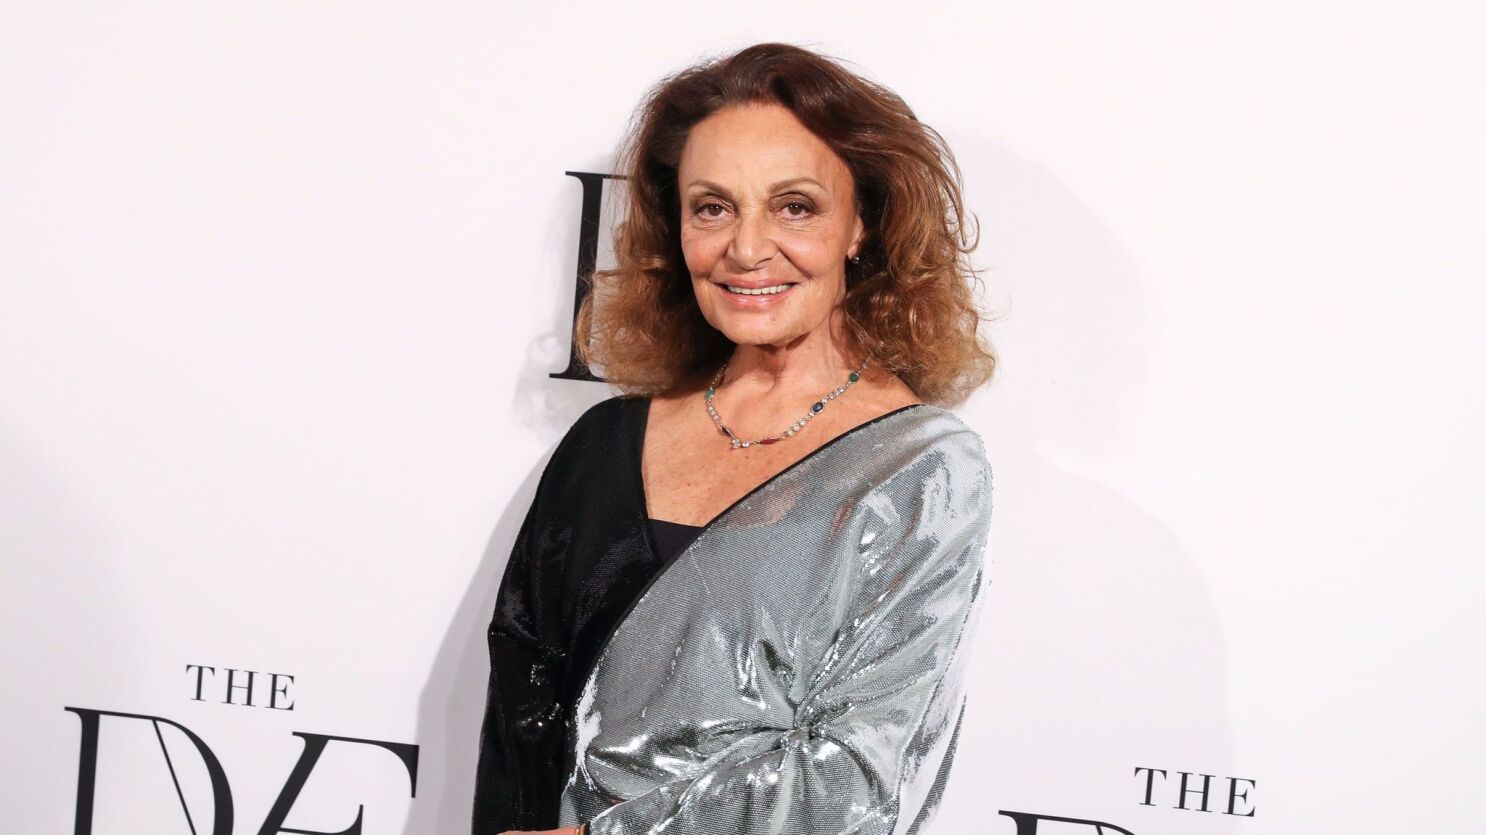 Diane Von Furstenberg To Teach Online Course On How To Build A Fashion Brand Los Angeles Times